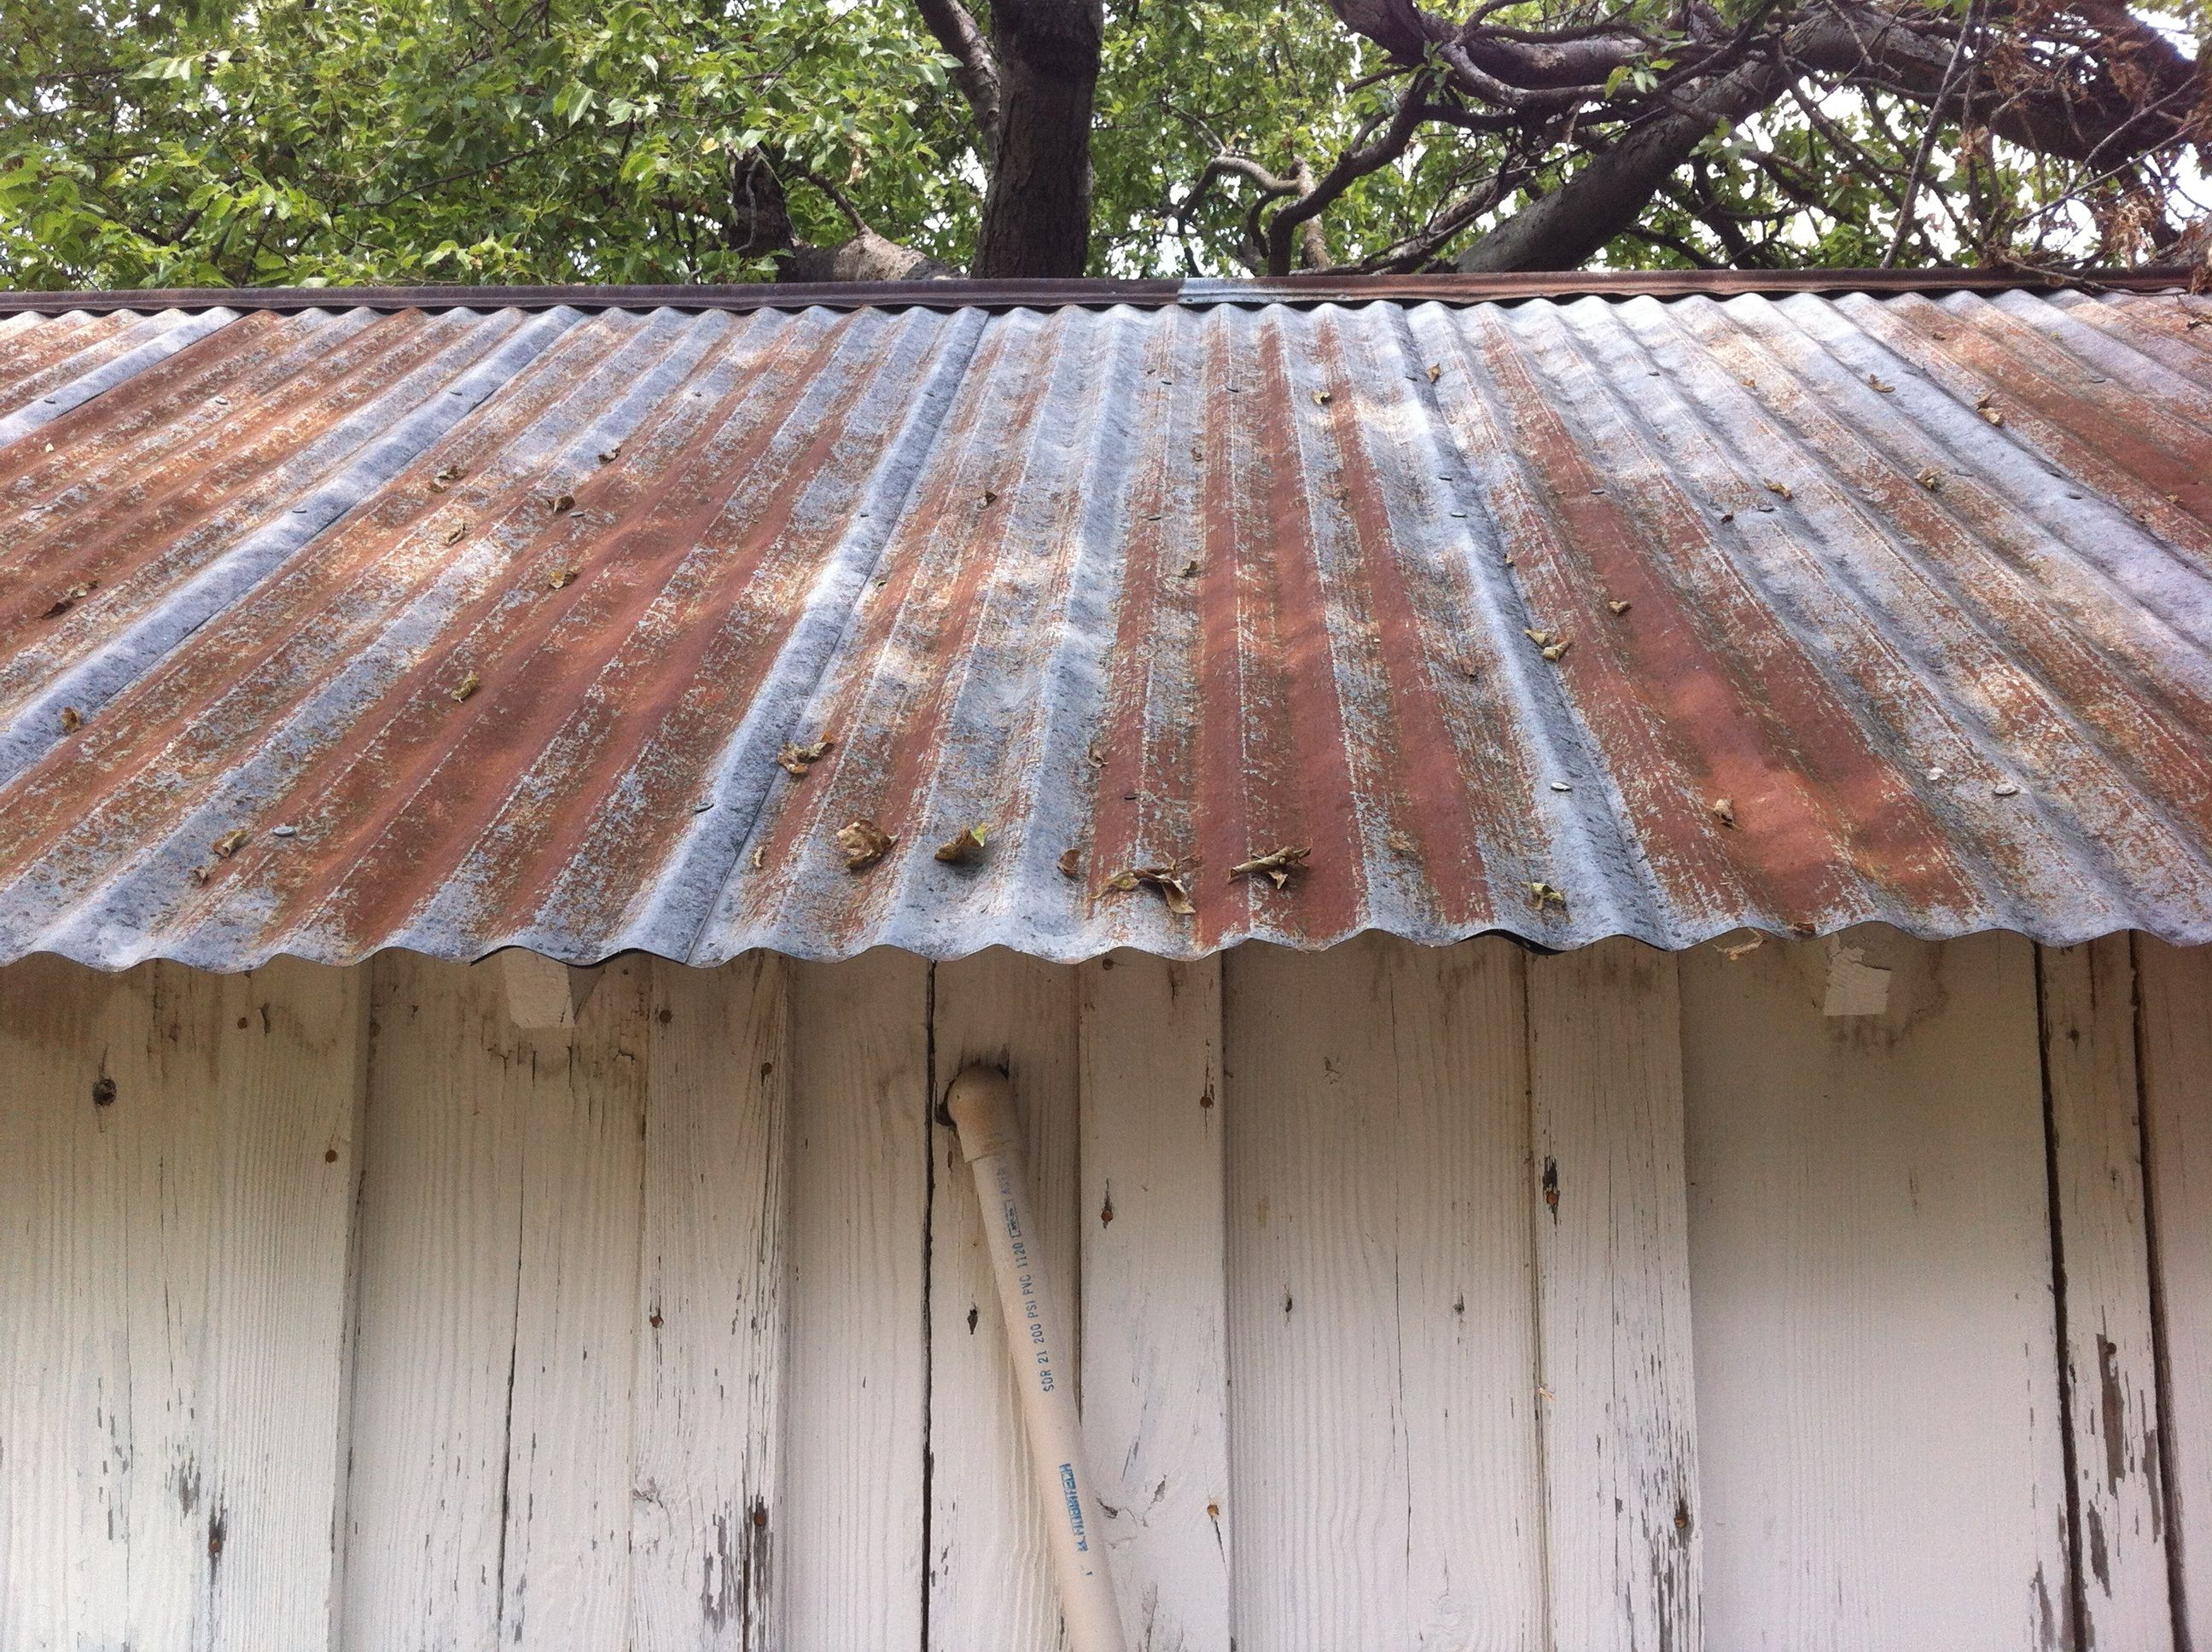 Galvanized Tin Roof | Corrugated metal roof, Tin shed ...